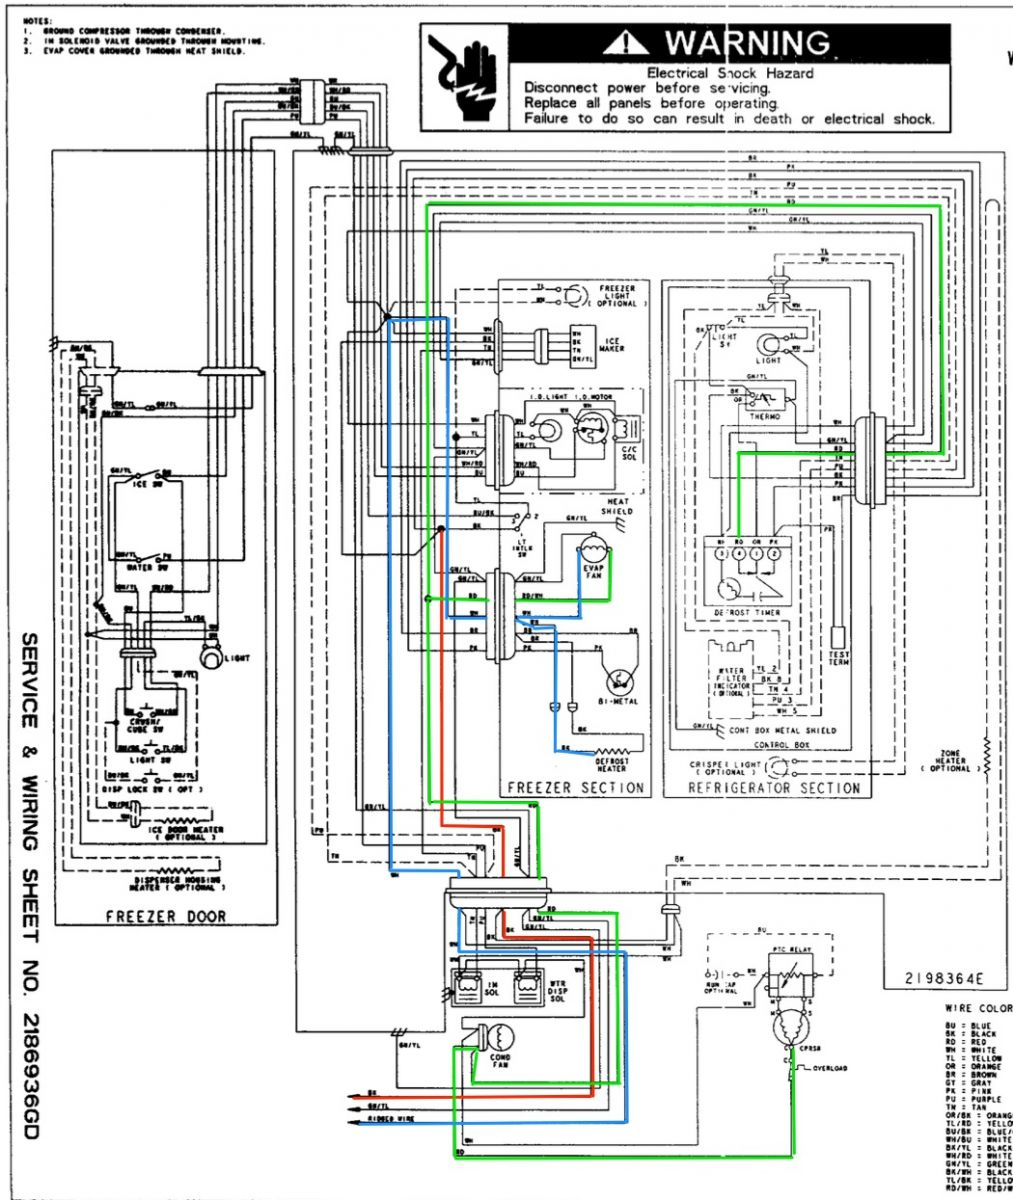 gallery_4_4_346879 whirlpool ed25rfxfw01 refrigerator wiring diagram the wiring diagram for refrigerator at mifinder.co